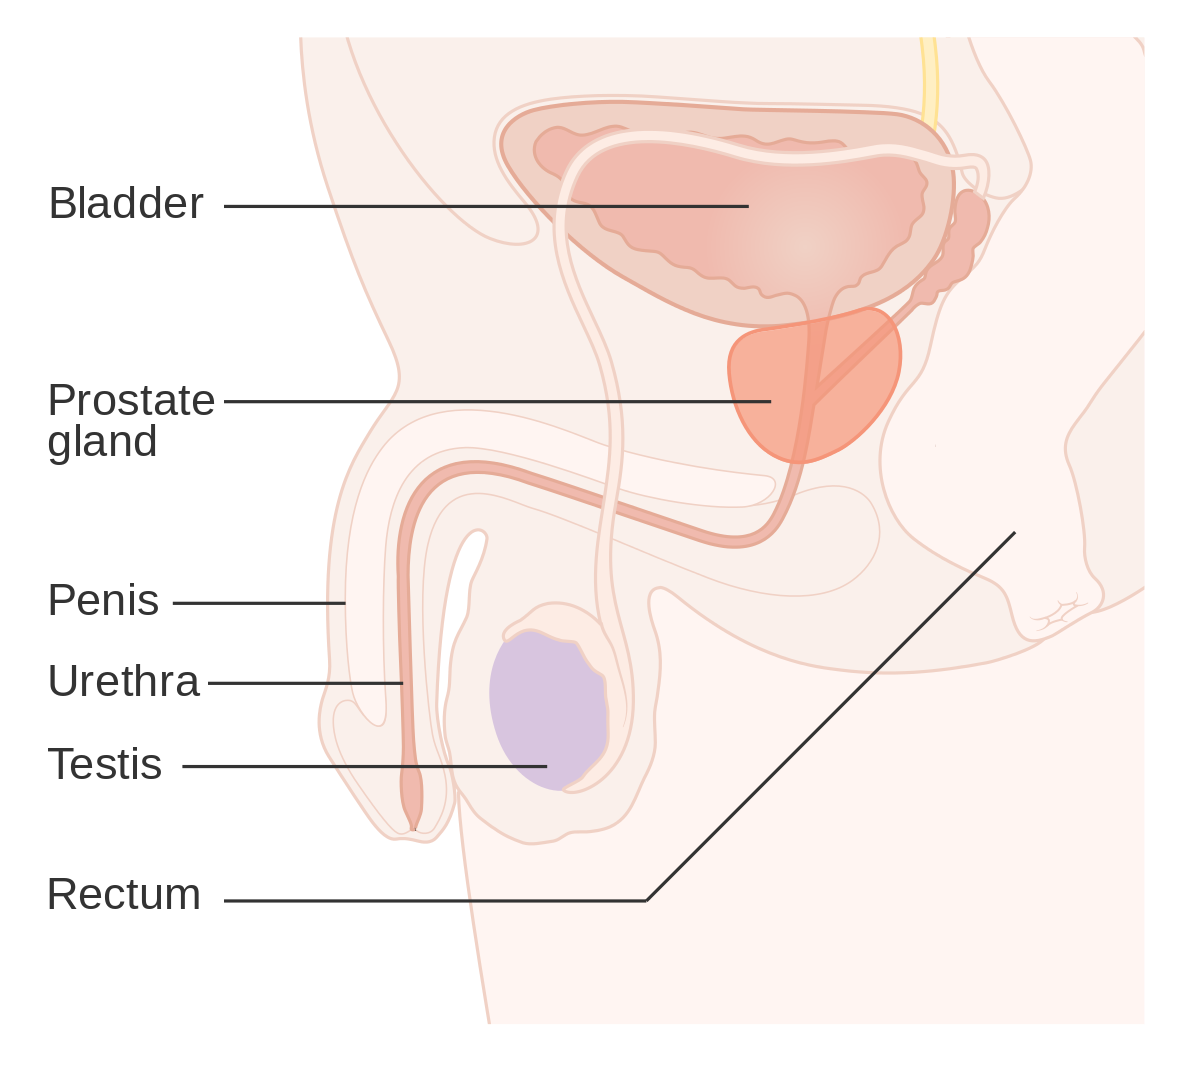 Hpv cancer prostate. Hpv cancer prostate